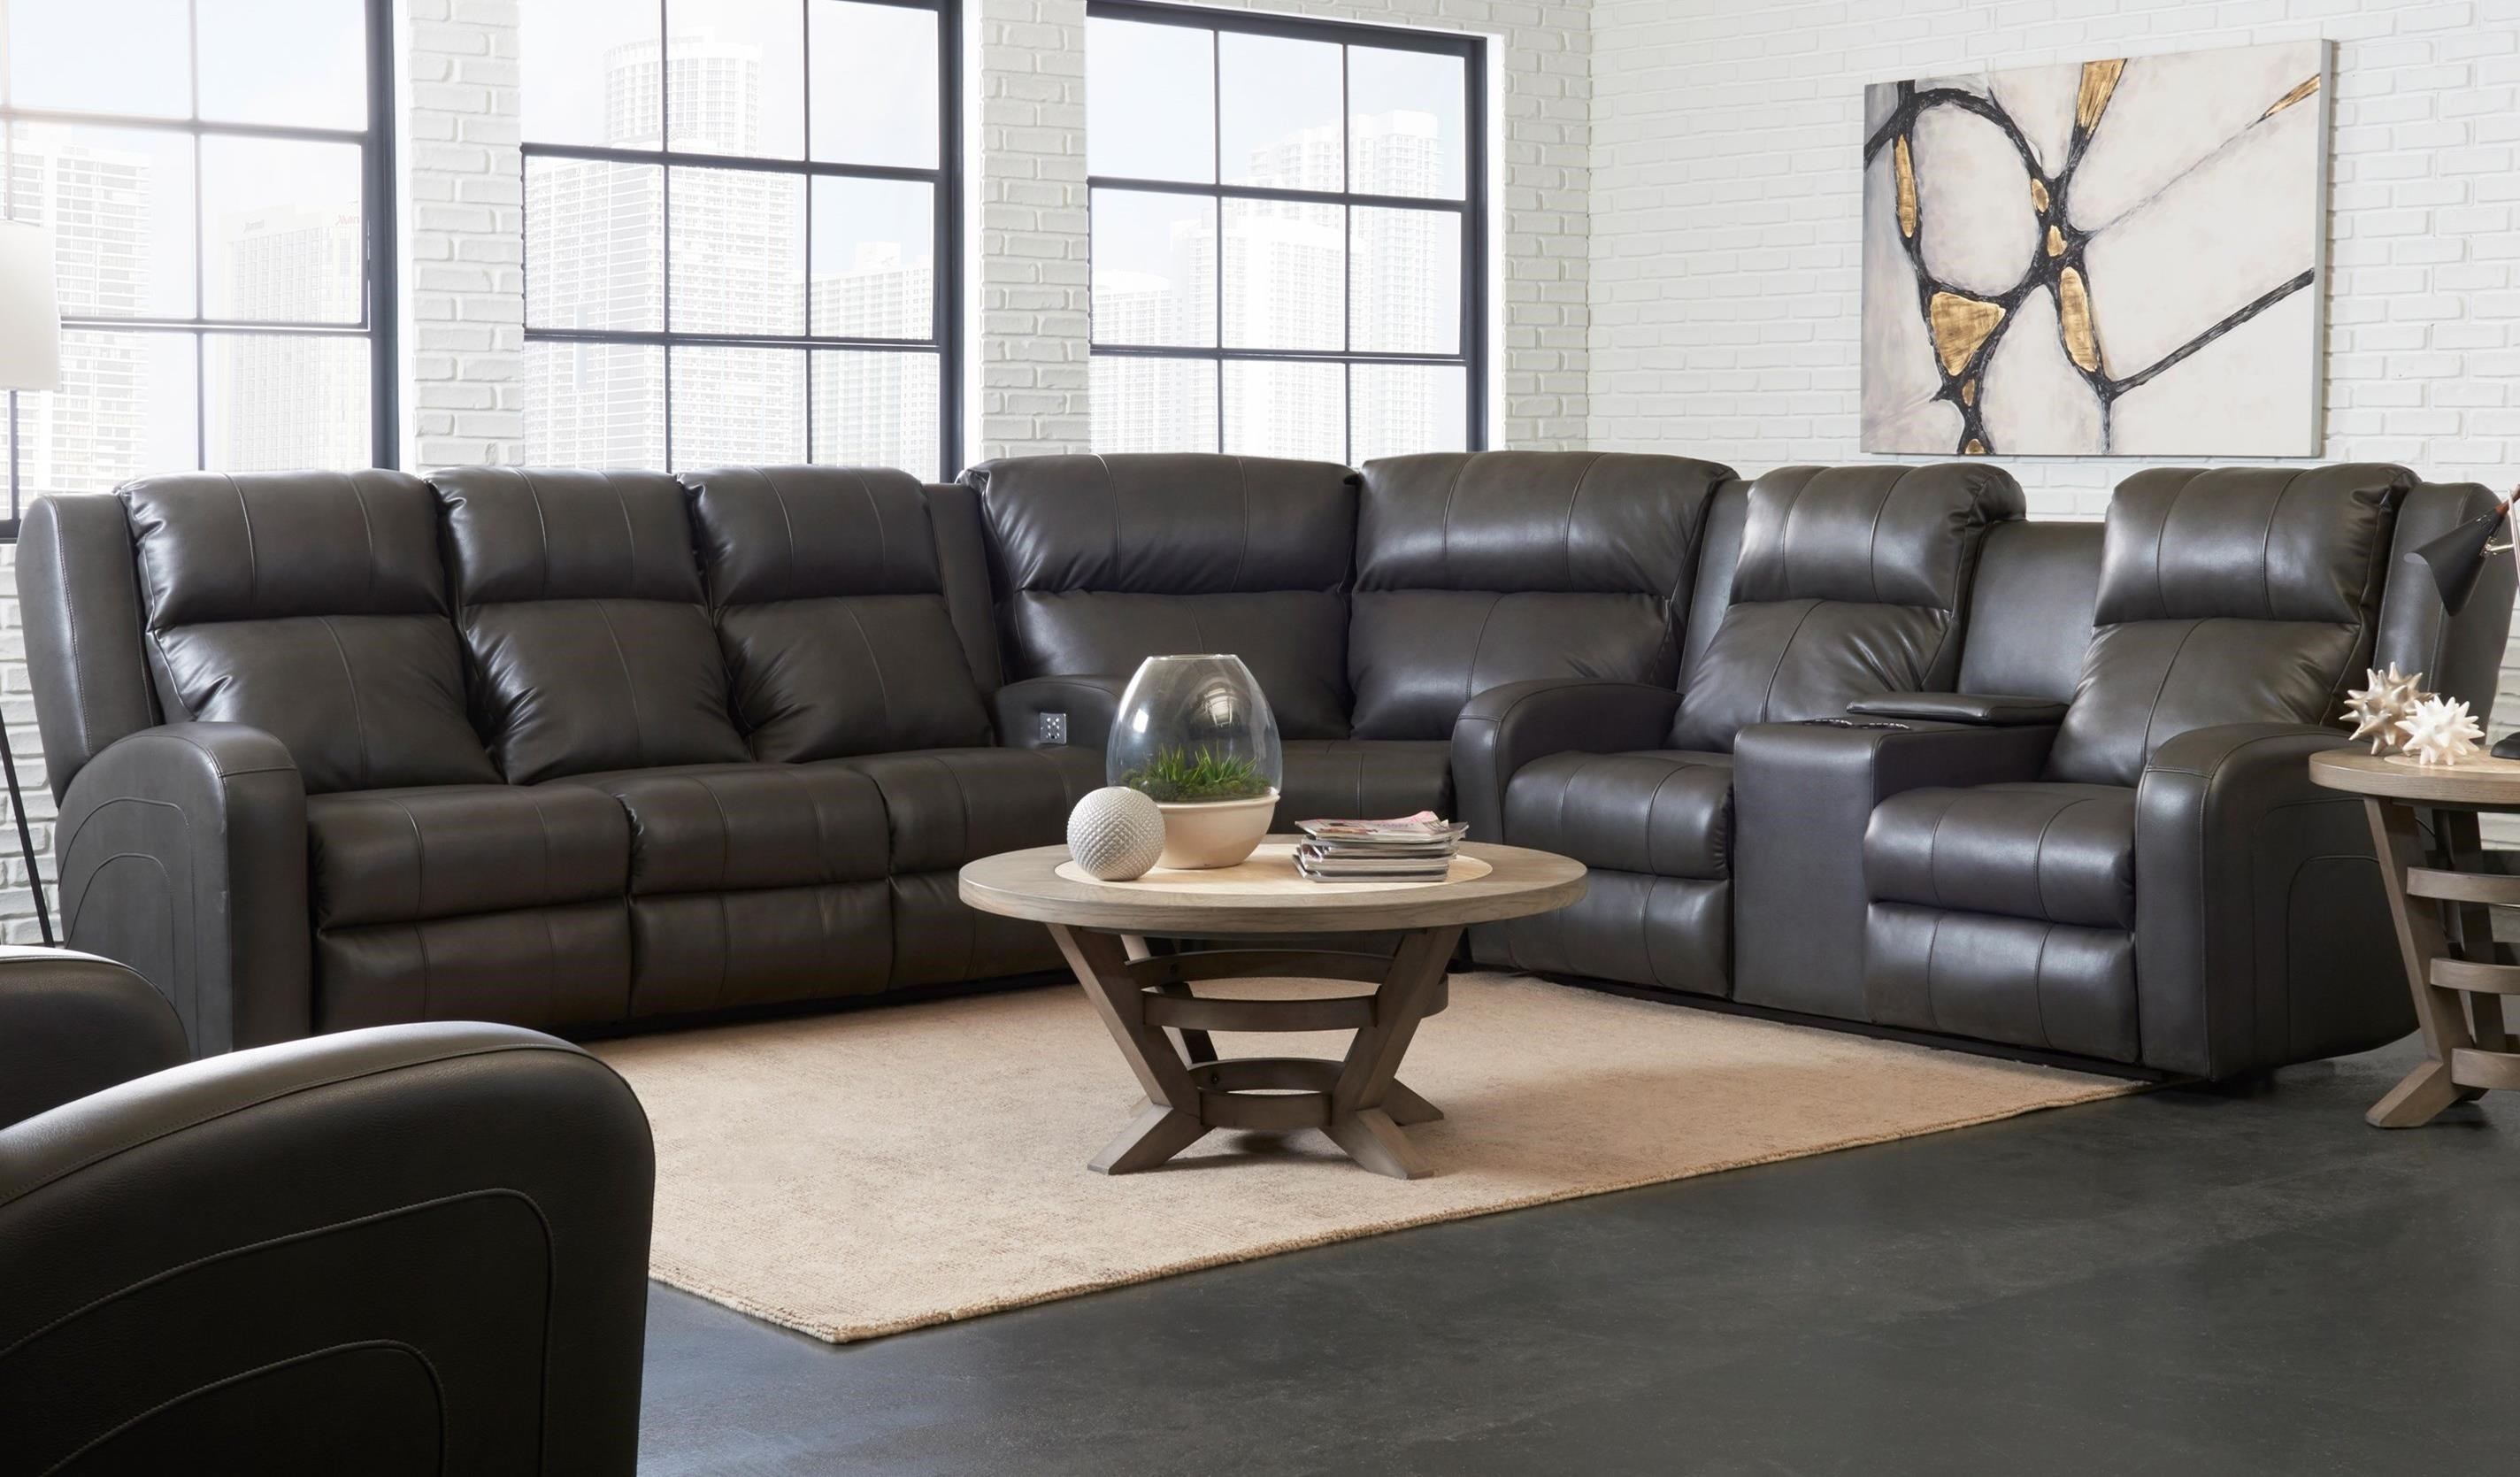 robinson and leather sofa dfs bed sale taraba home review